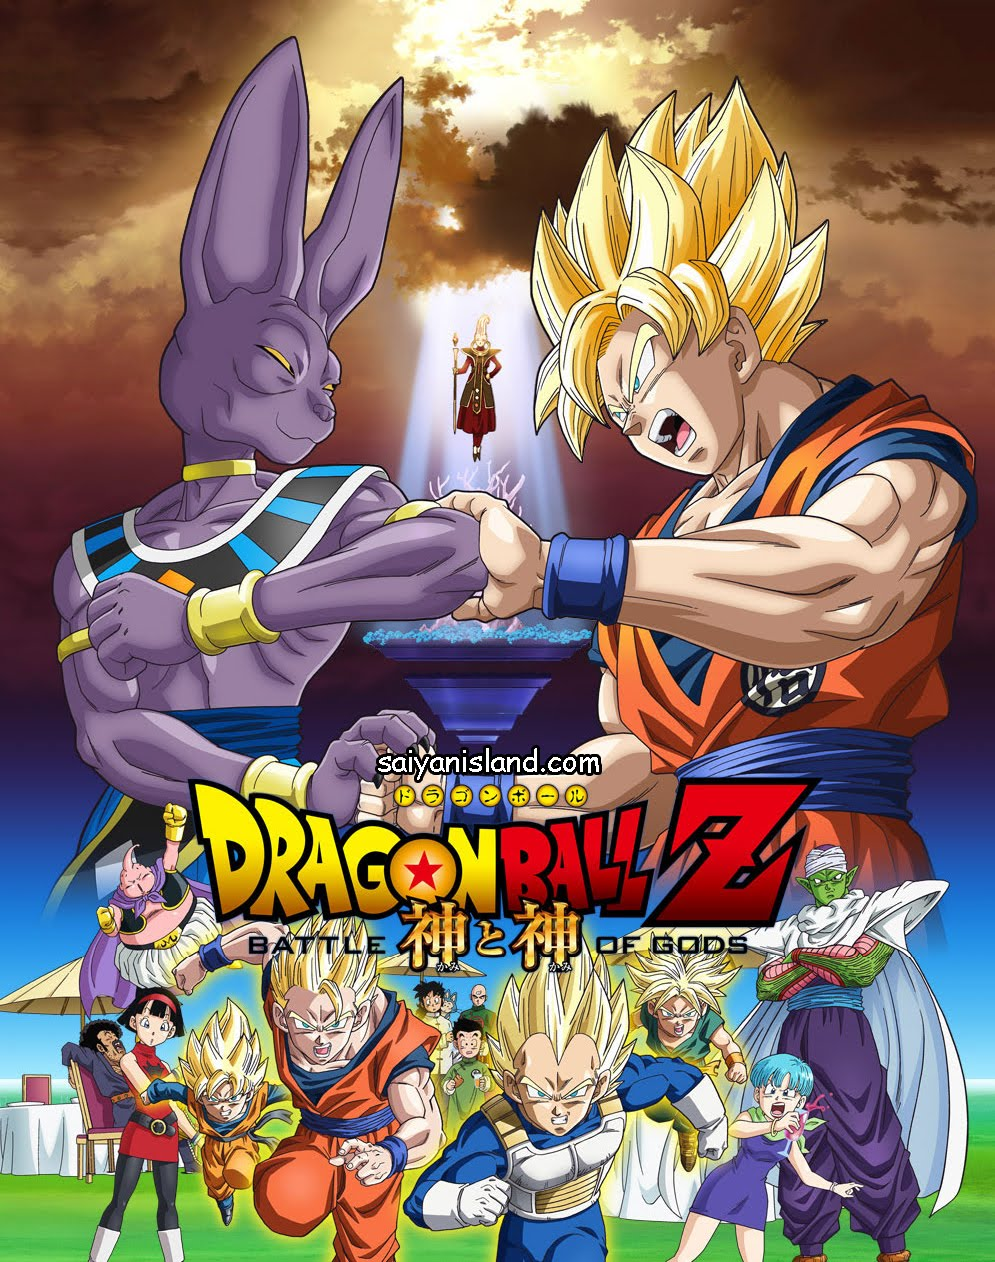 Dragon Ball Z: Battle of Gods 2013 - Full (HD)